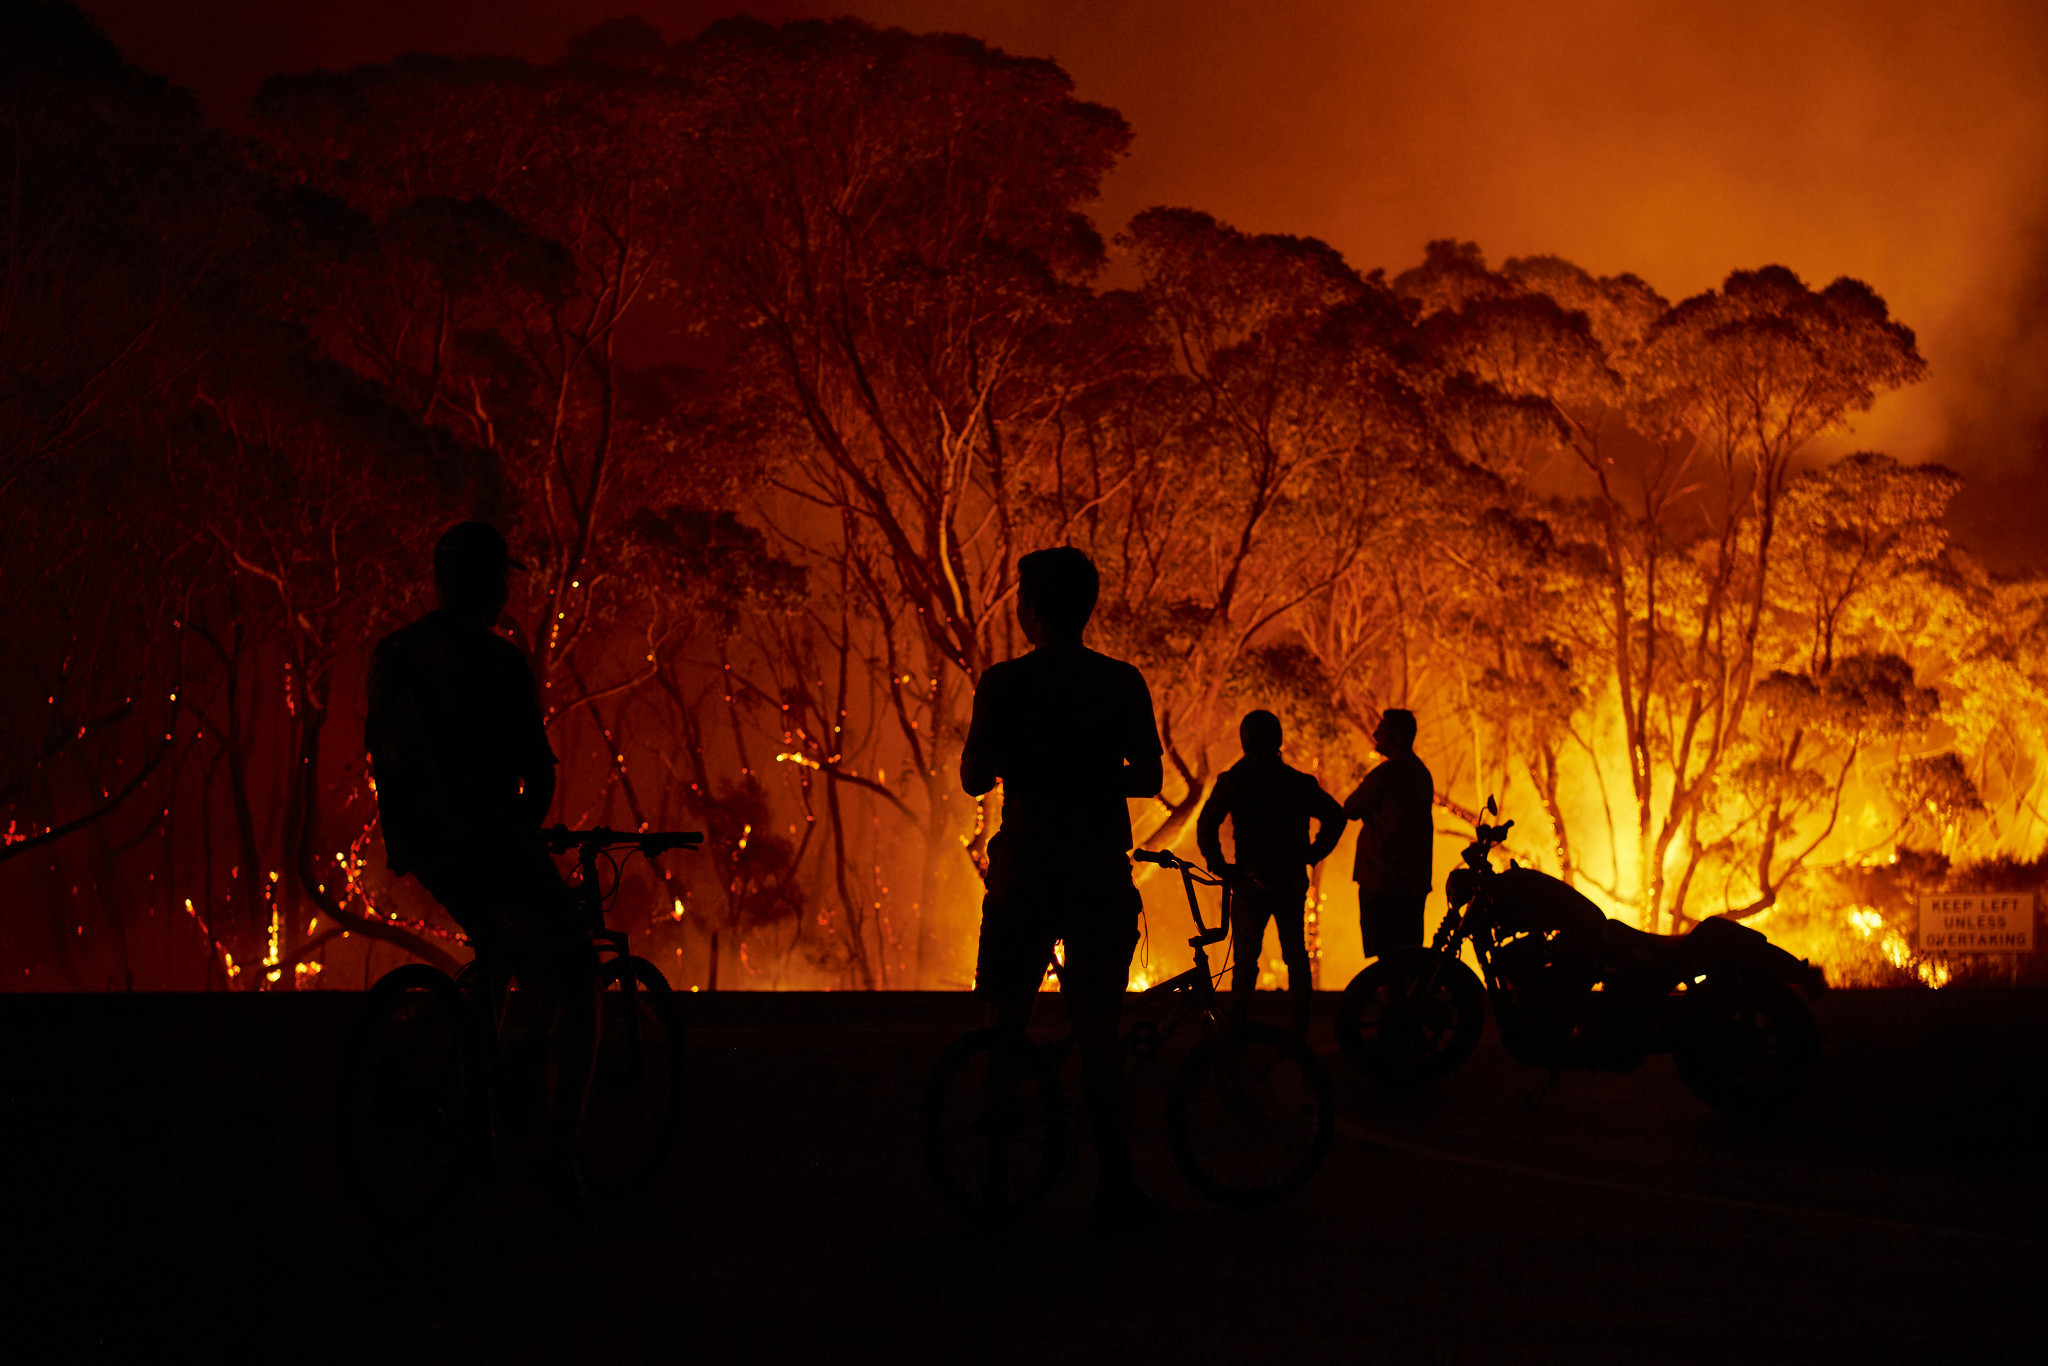 Bushfires have been particularly severe in Sydney's state of New South Wales ©Getty Images